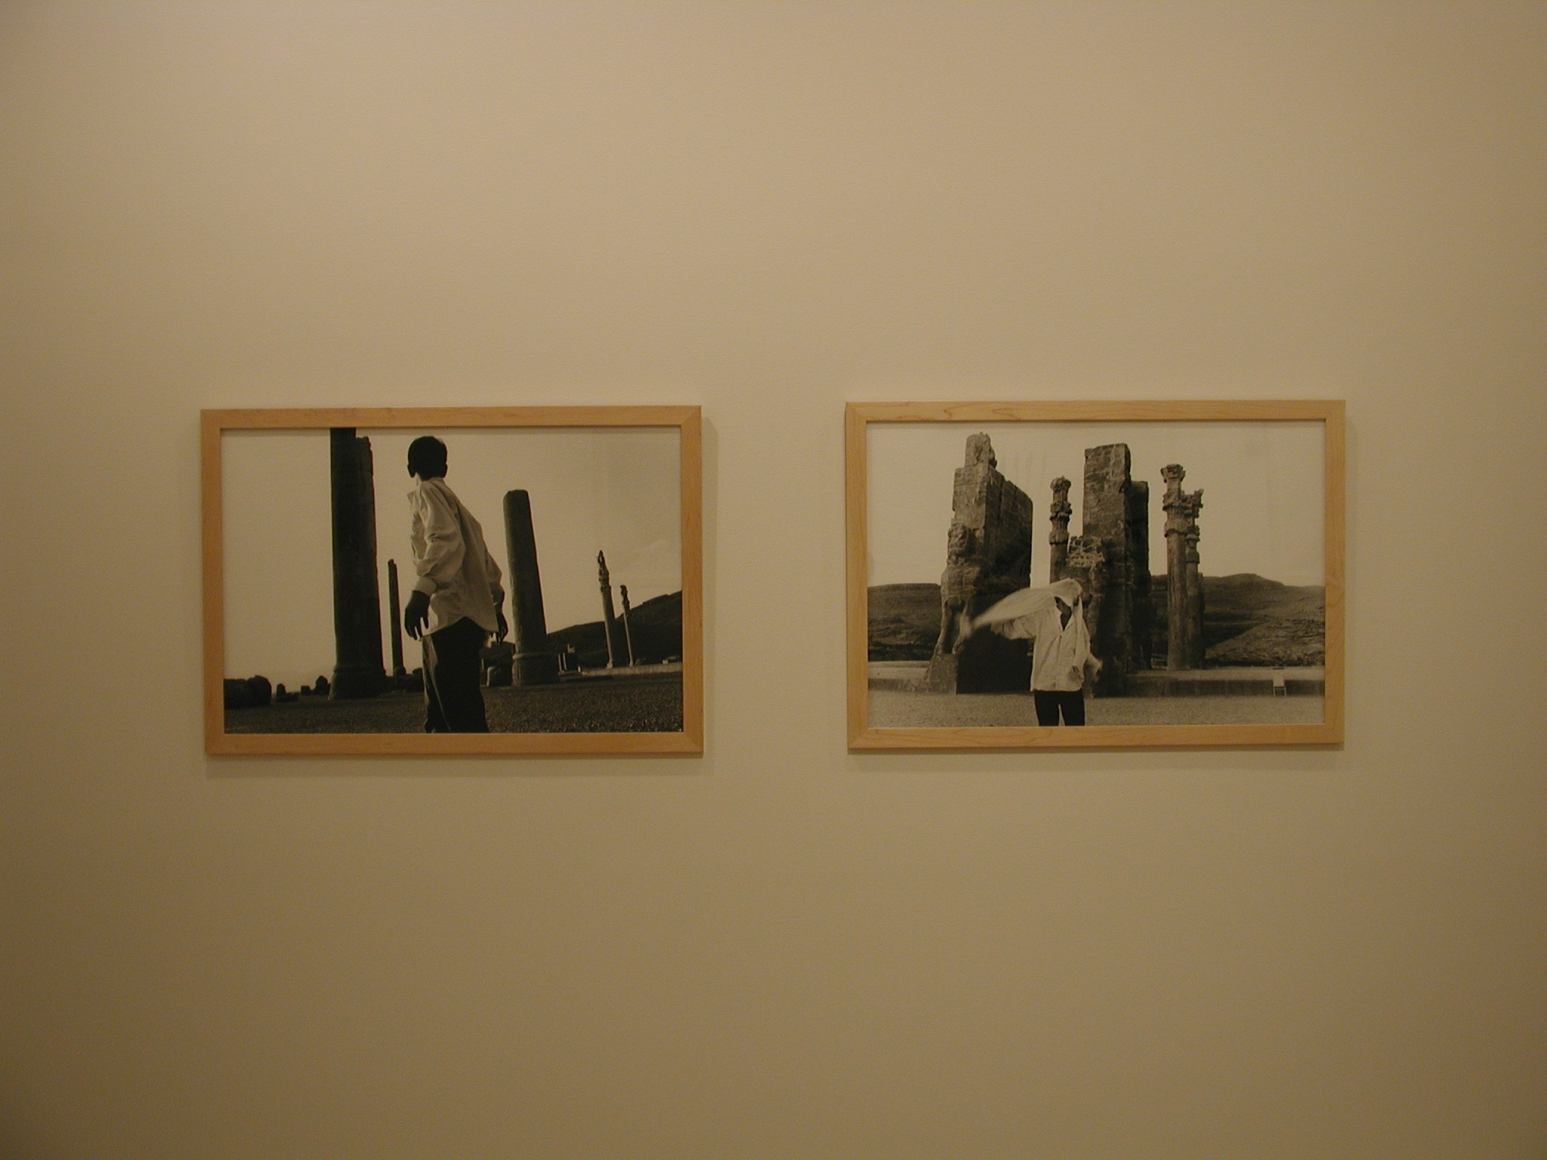 Two framed black and white photographs of a man standing in front of stone columns in the exhibition Sadegh Tirafkan at Lehmann Maupin in New York in 2004